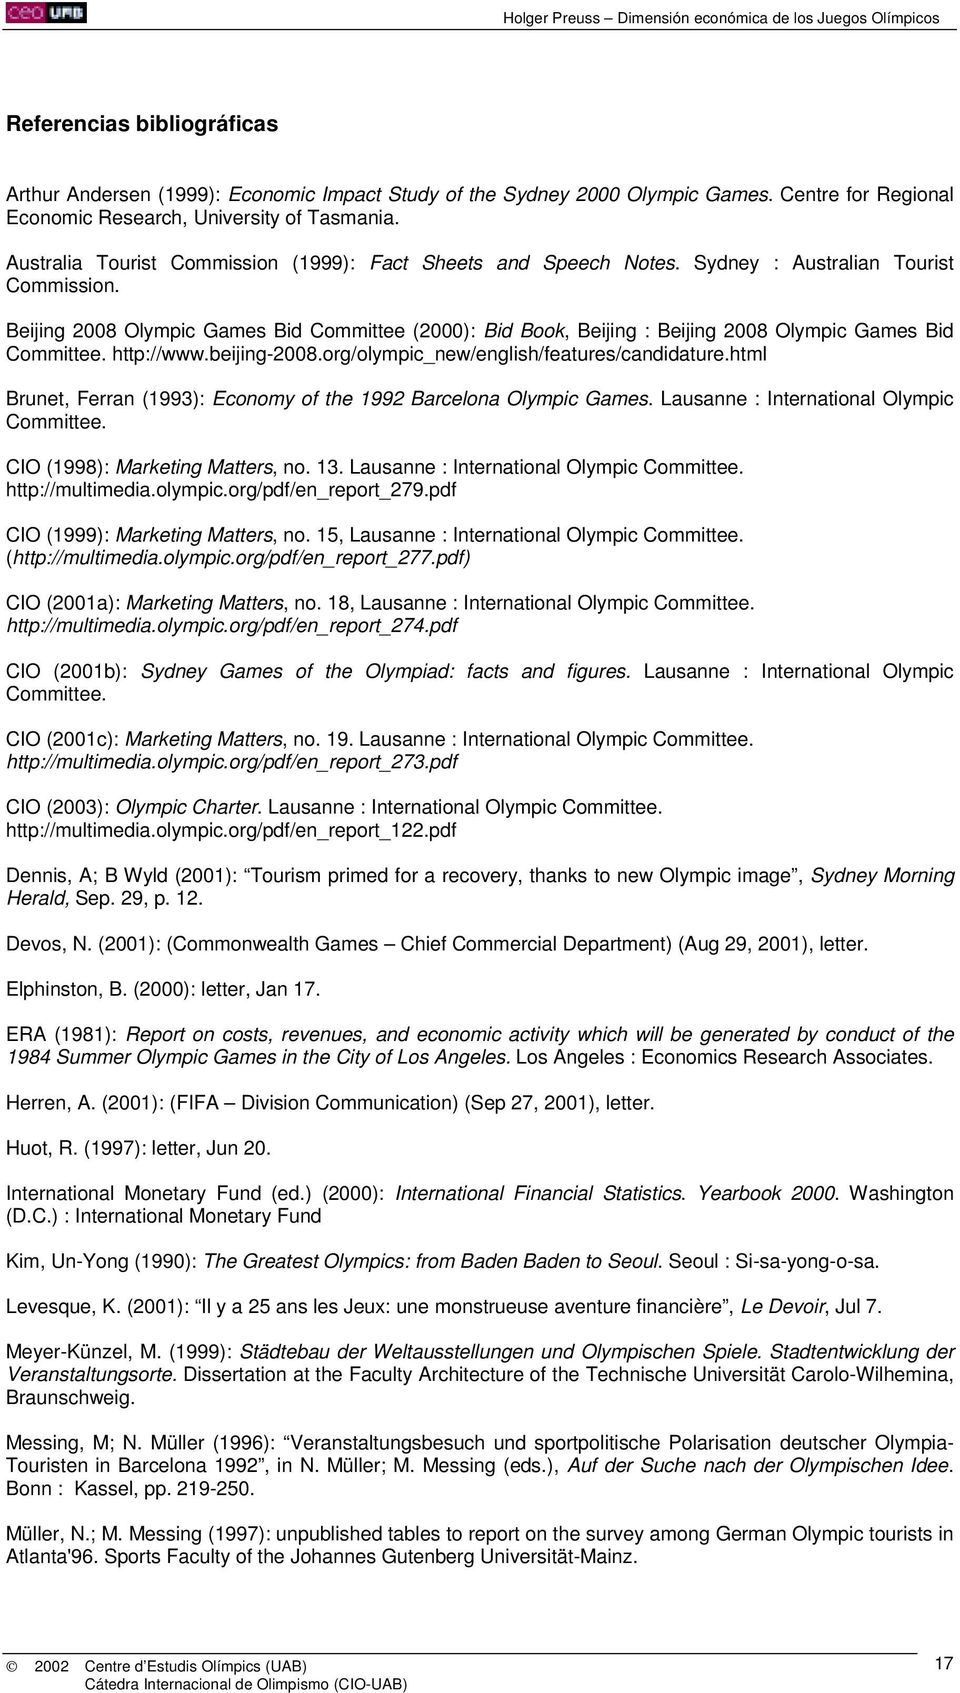 Beijing 28 Olympic Games Bid Committee (2): Bid Book, Beijing : Beijing 28 Olympic Games Bid Committee. http://www.beijing-28.org/olympic_new/english/features/candidature.